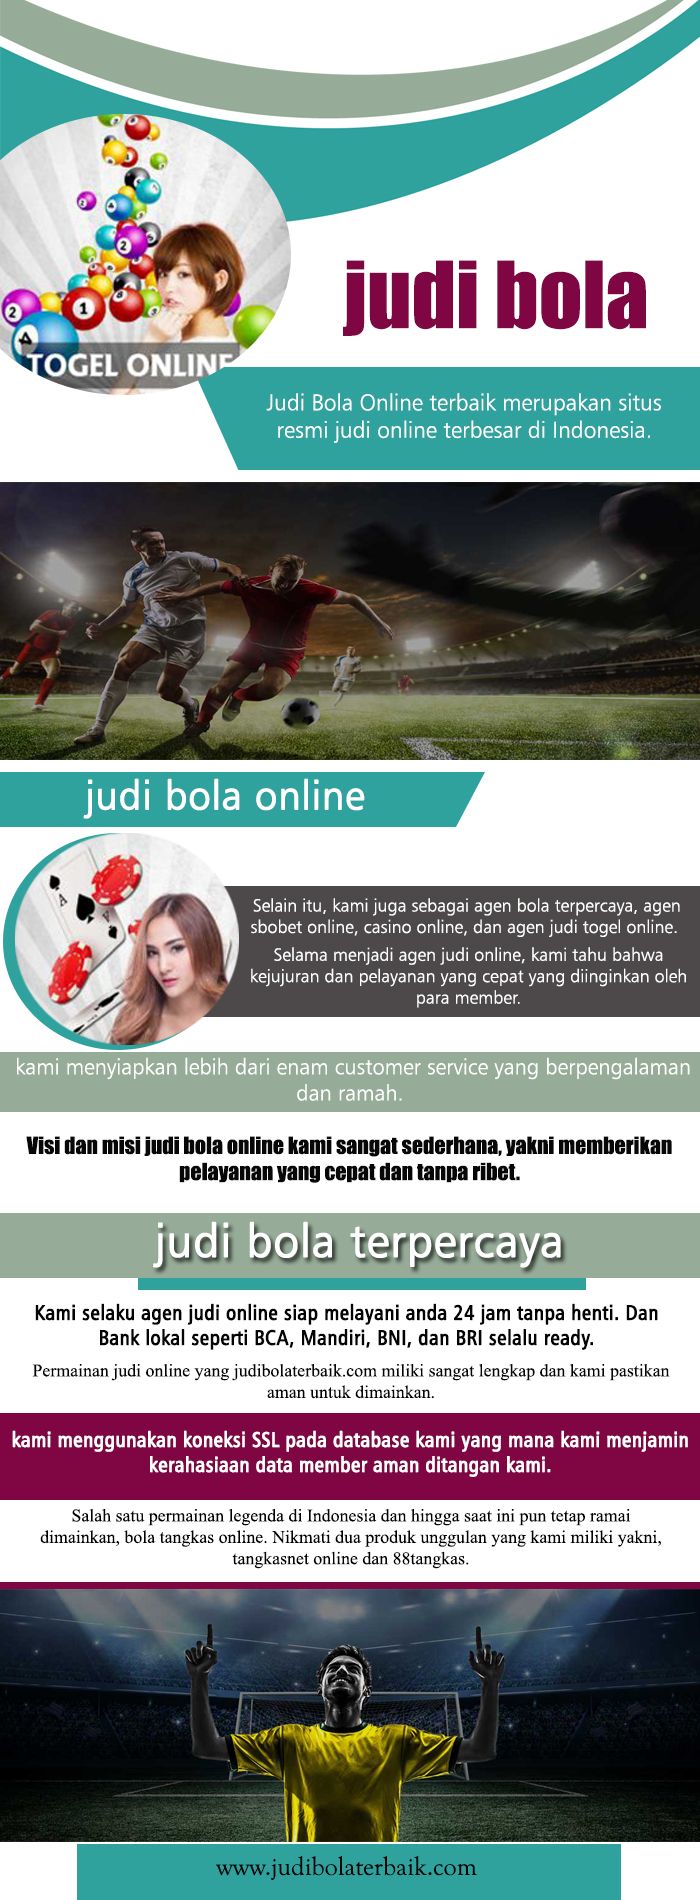 website judi bola indonesia